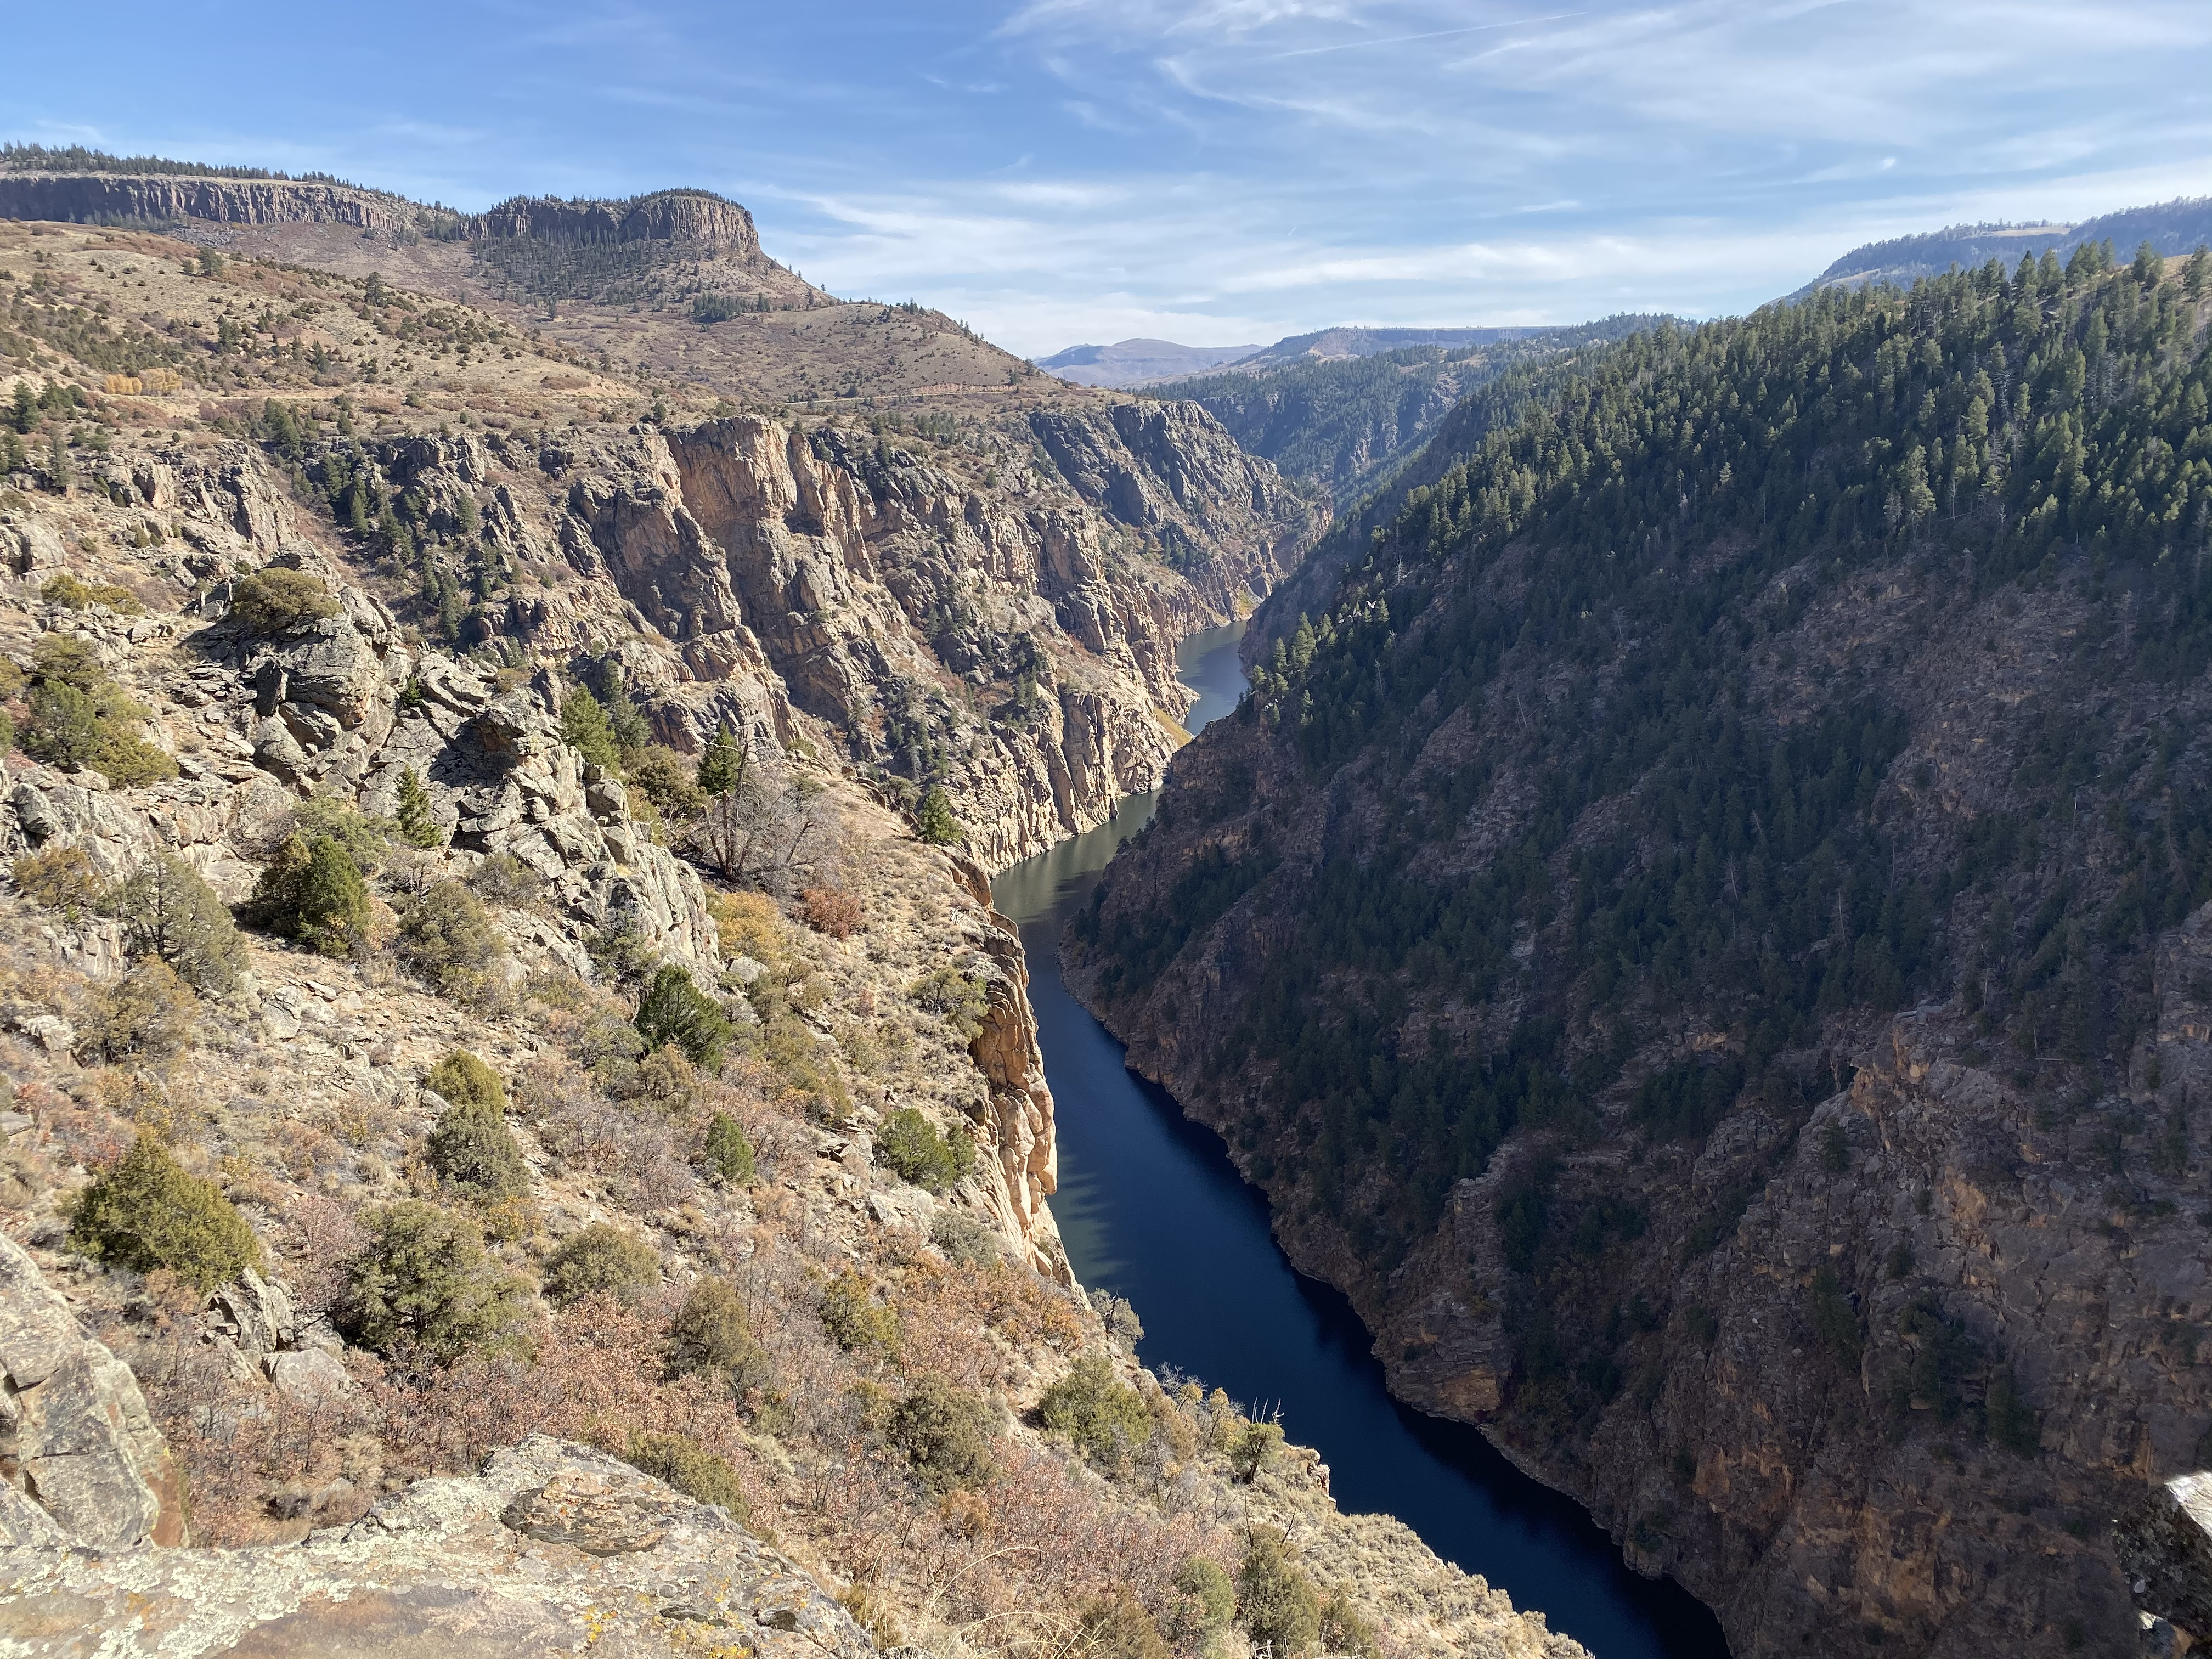 Looking upriver from the Pioneer Point overlook.